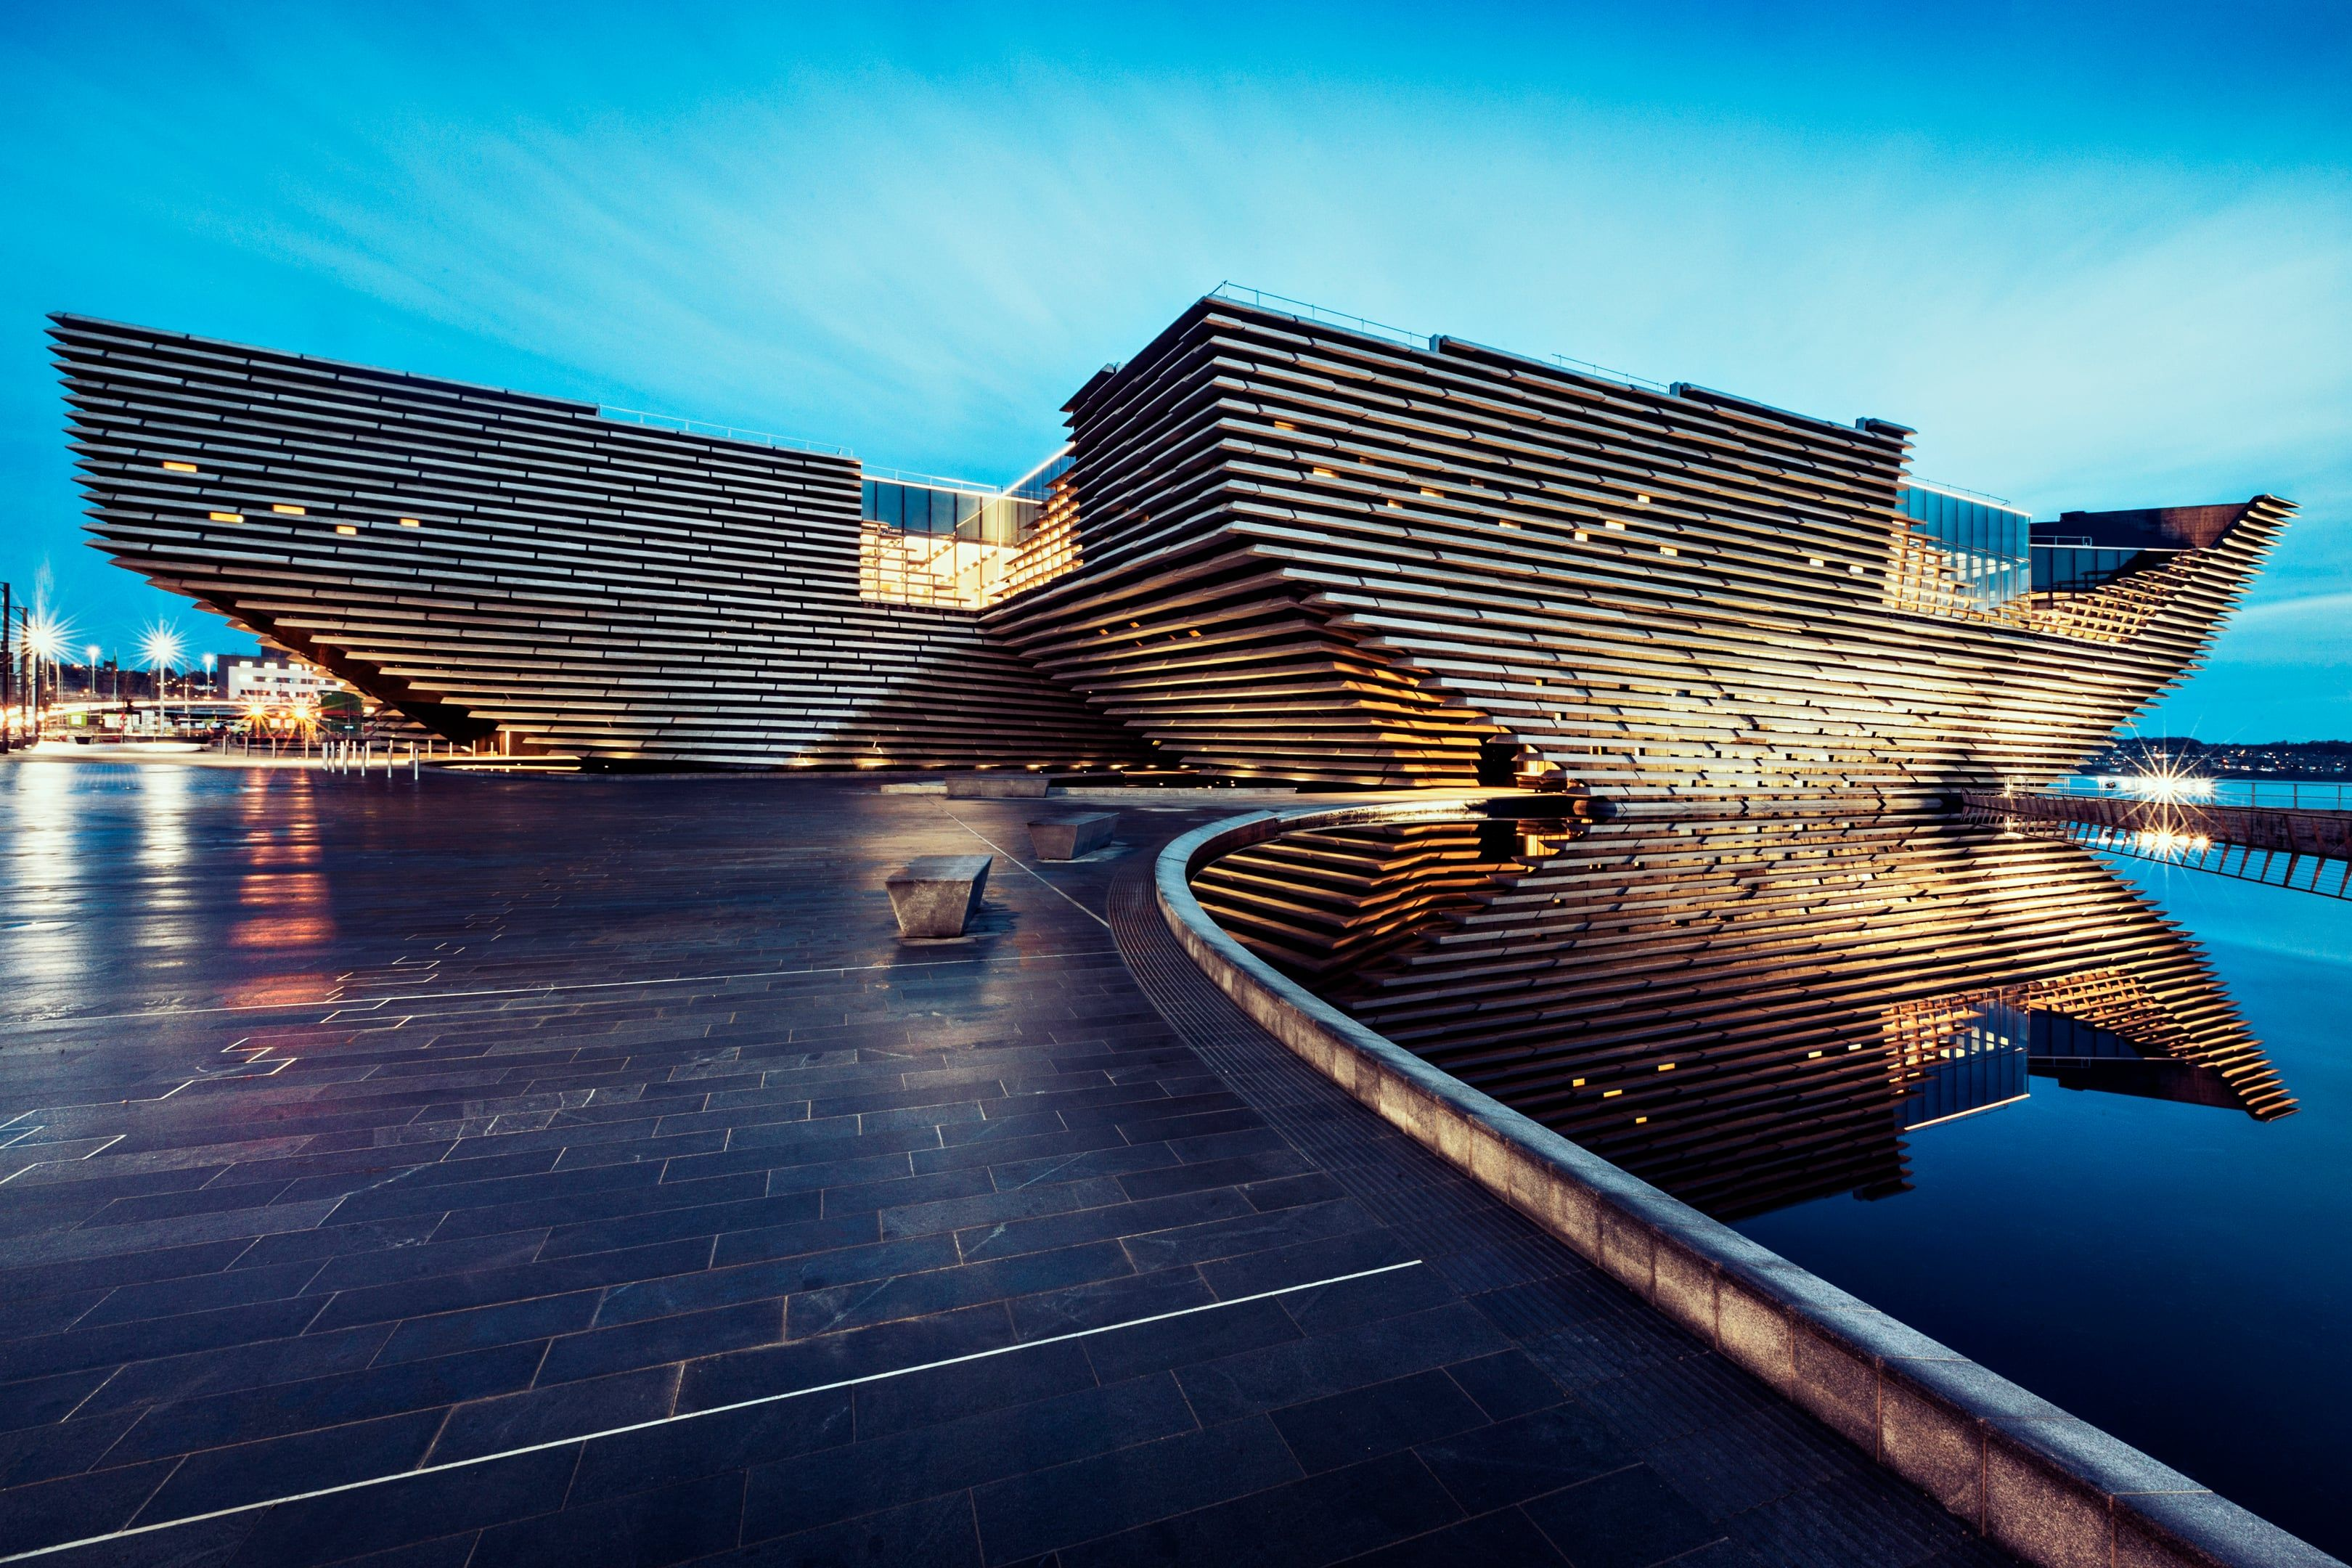 drone footage of kengo kuma's V&A museum of design, dundee